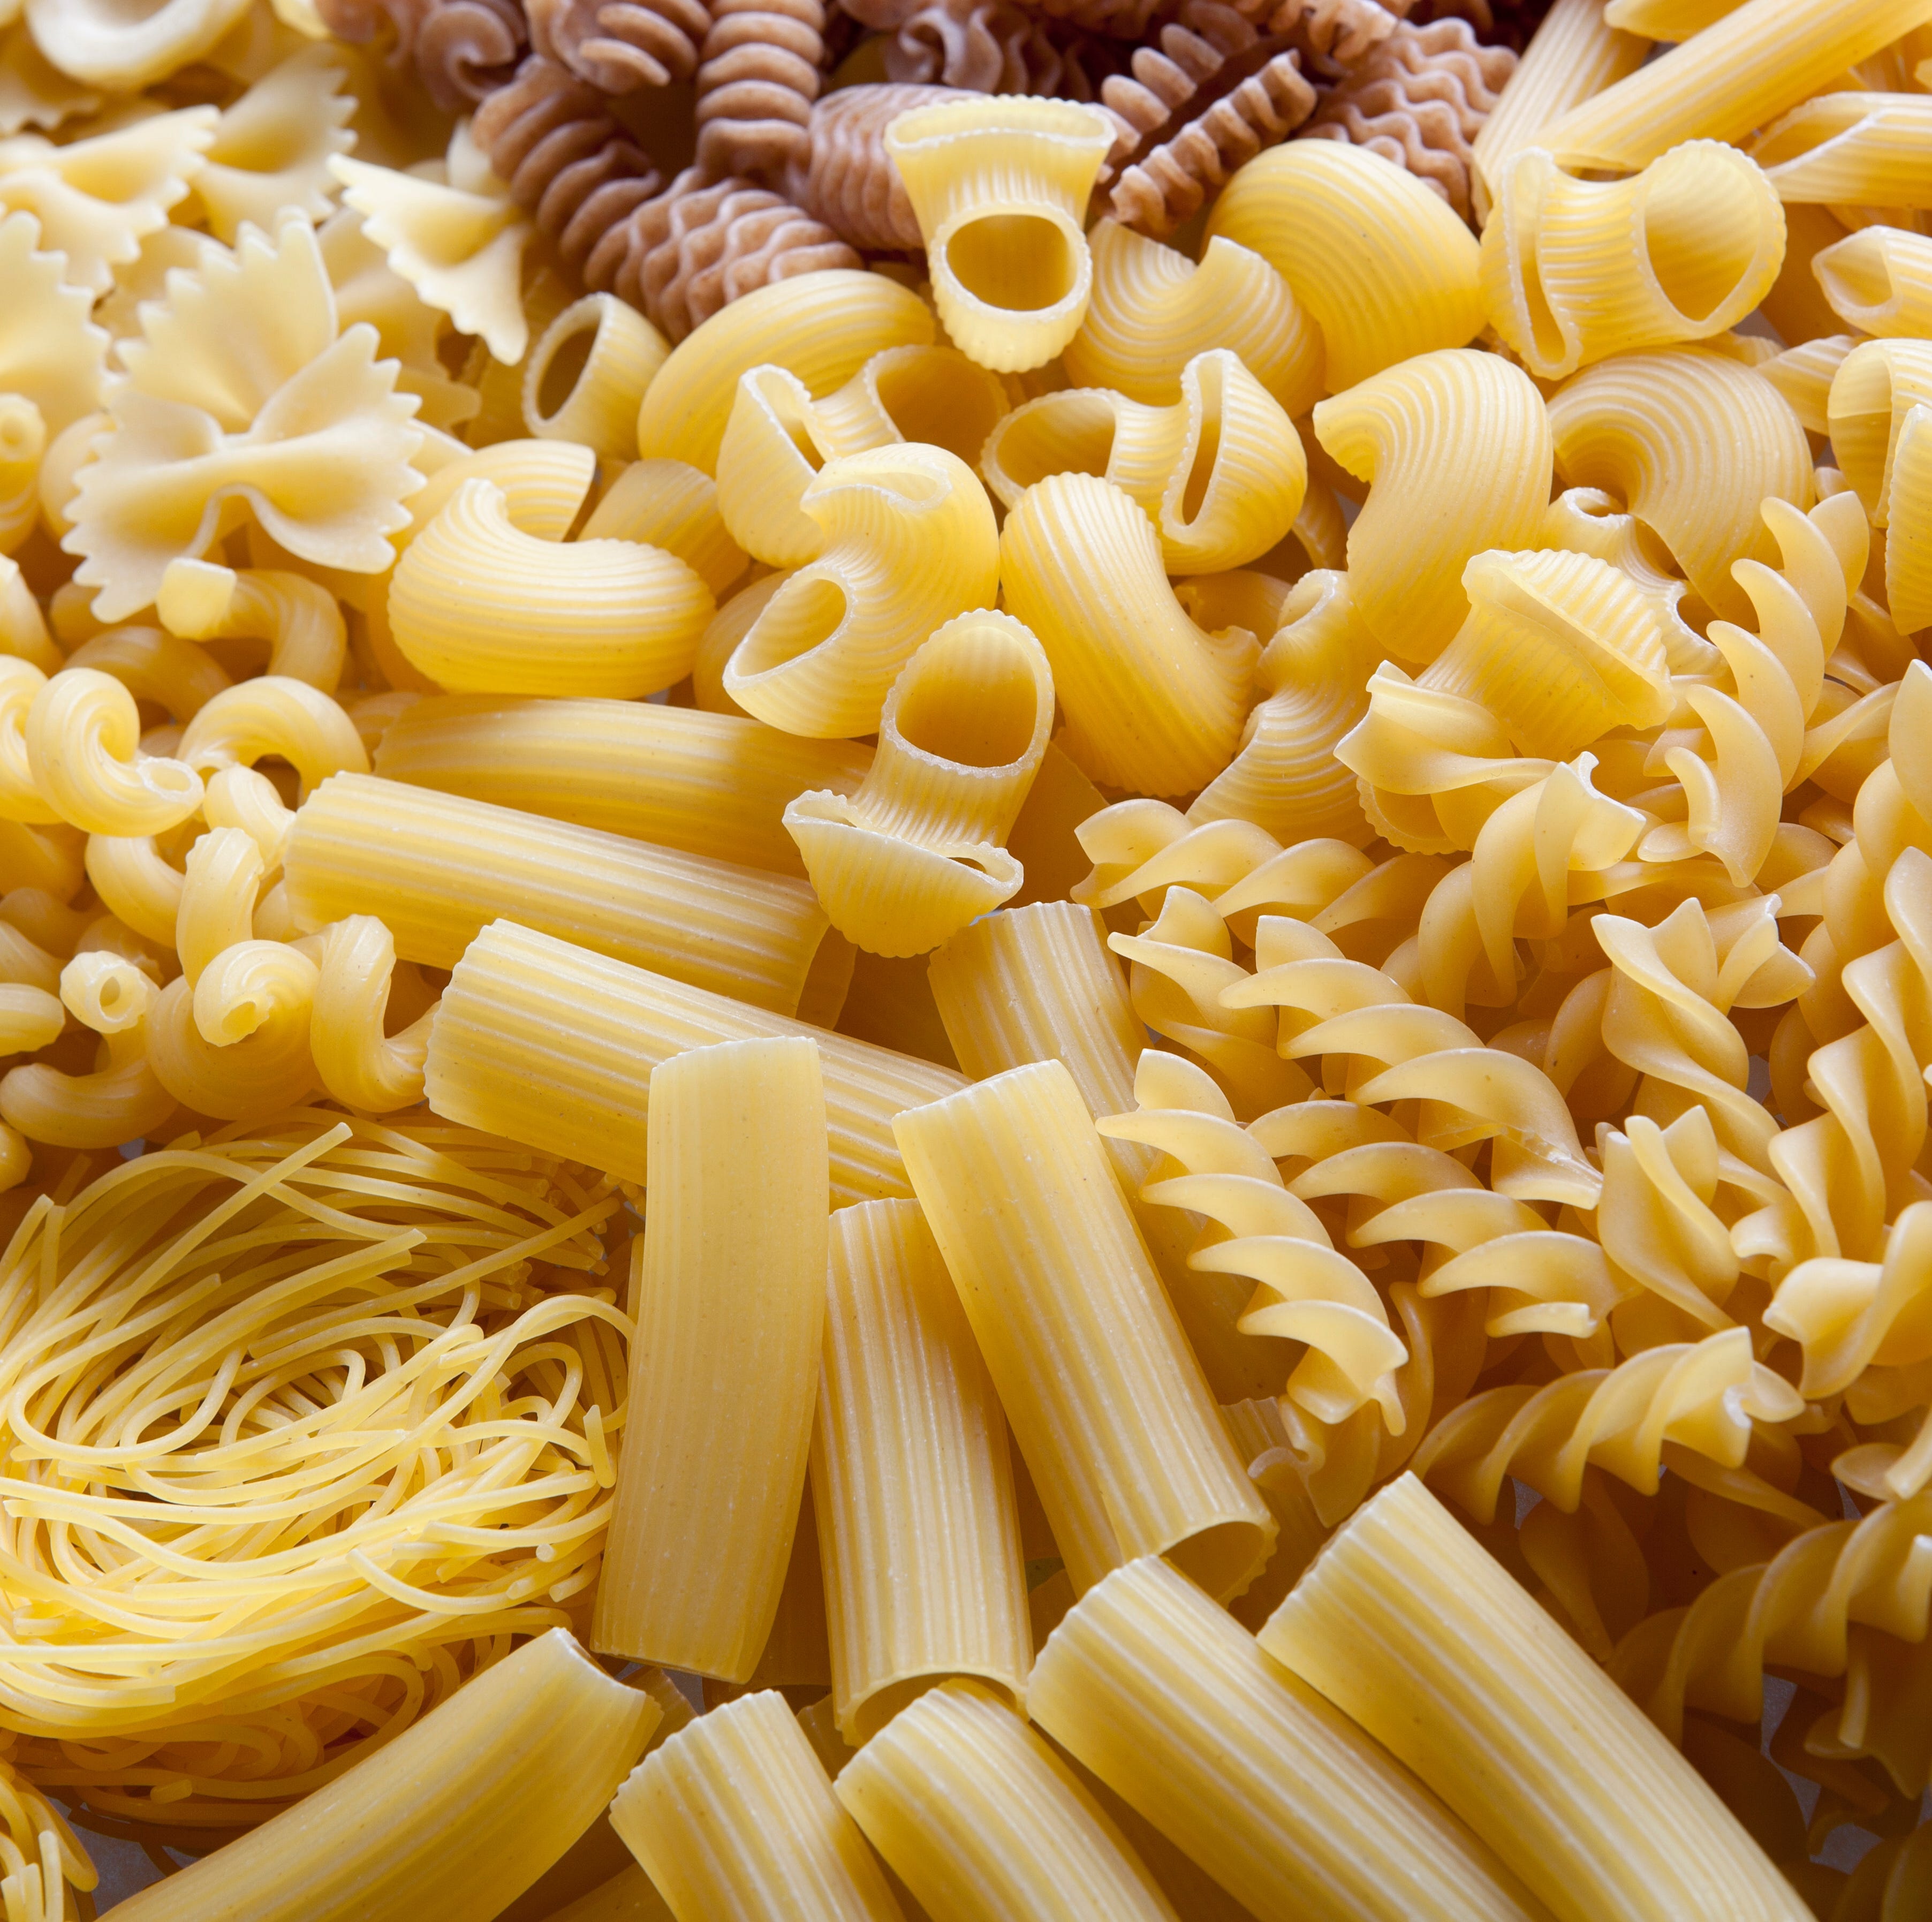 Low-carb diet linked to early death, medical study suggests